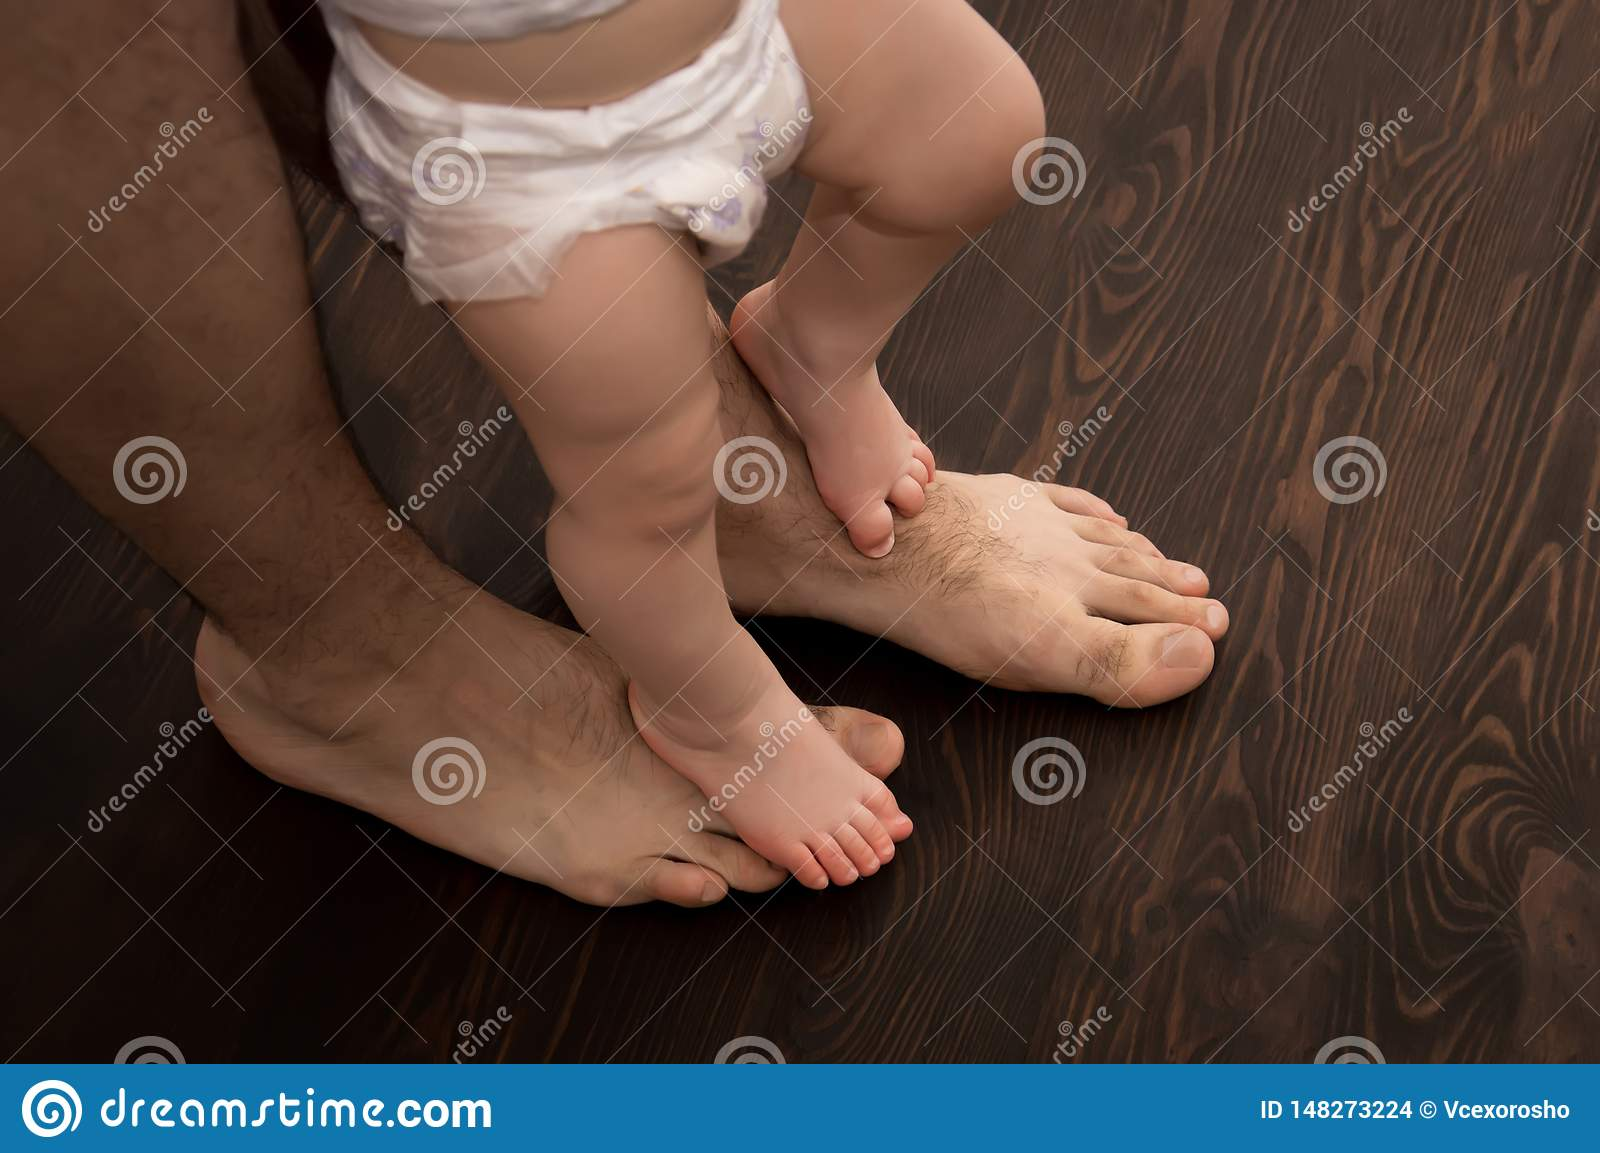 The child makes the first step. Large male legs with small baby legs. Dad helps the child take the first steps